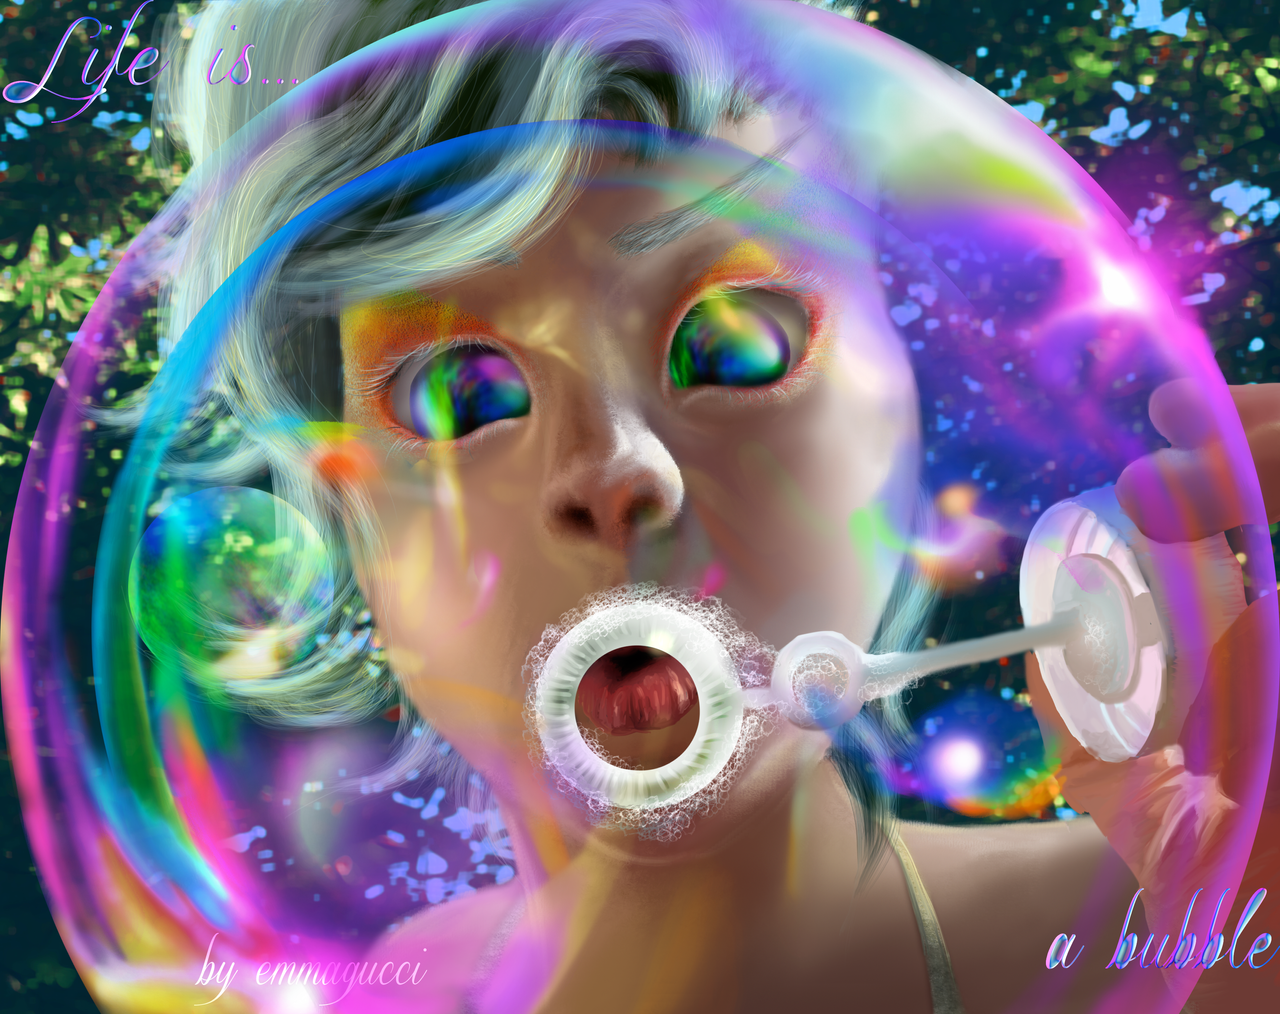 Life is ... a bubble by emmagucci